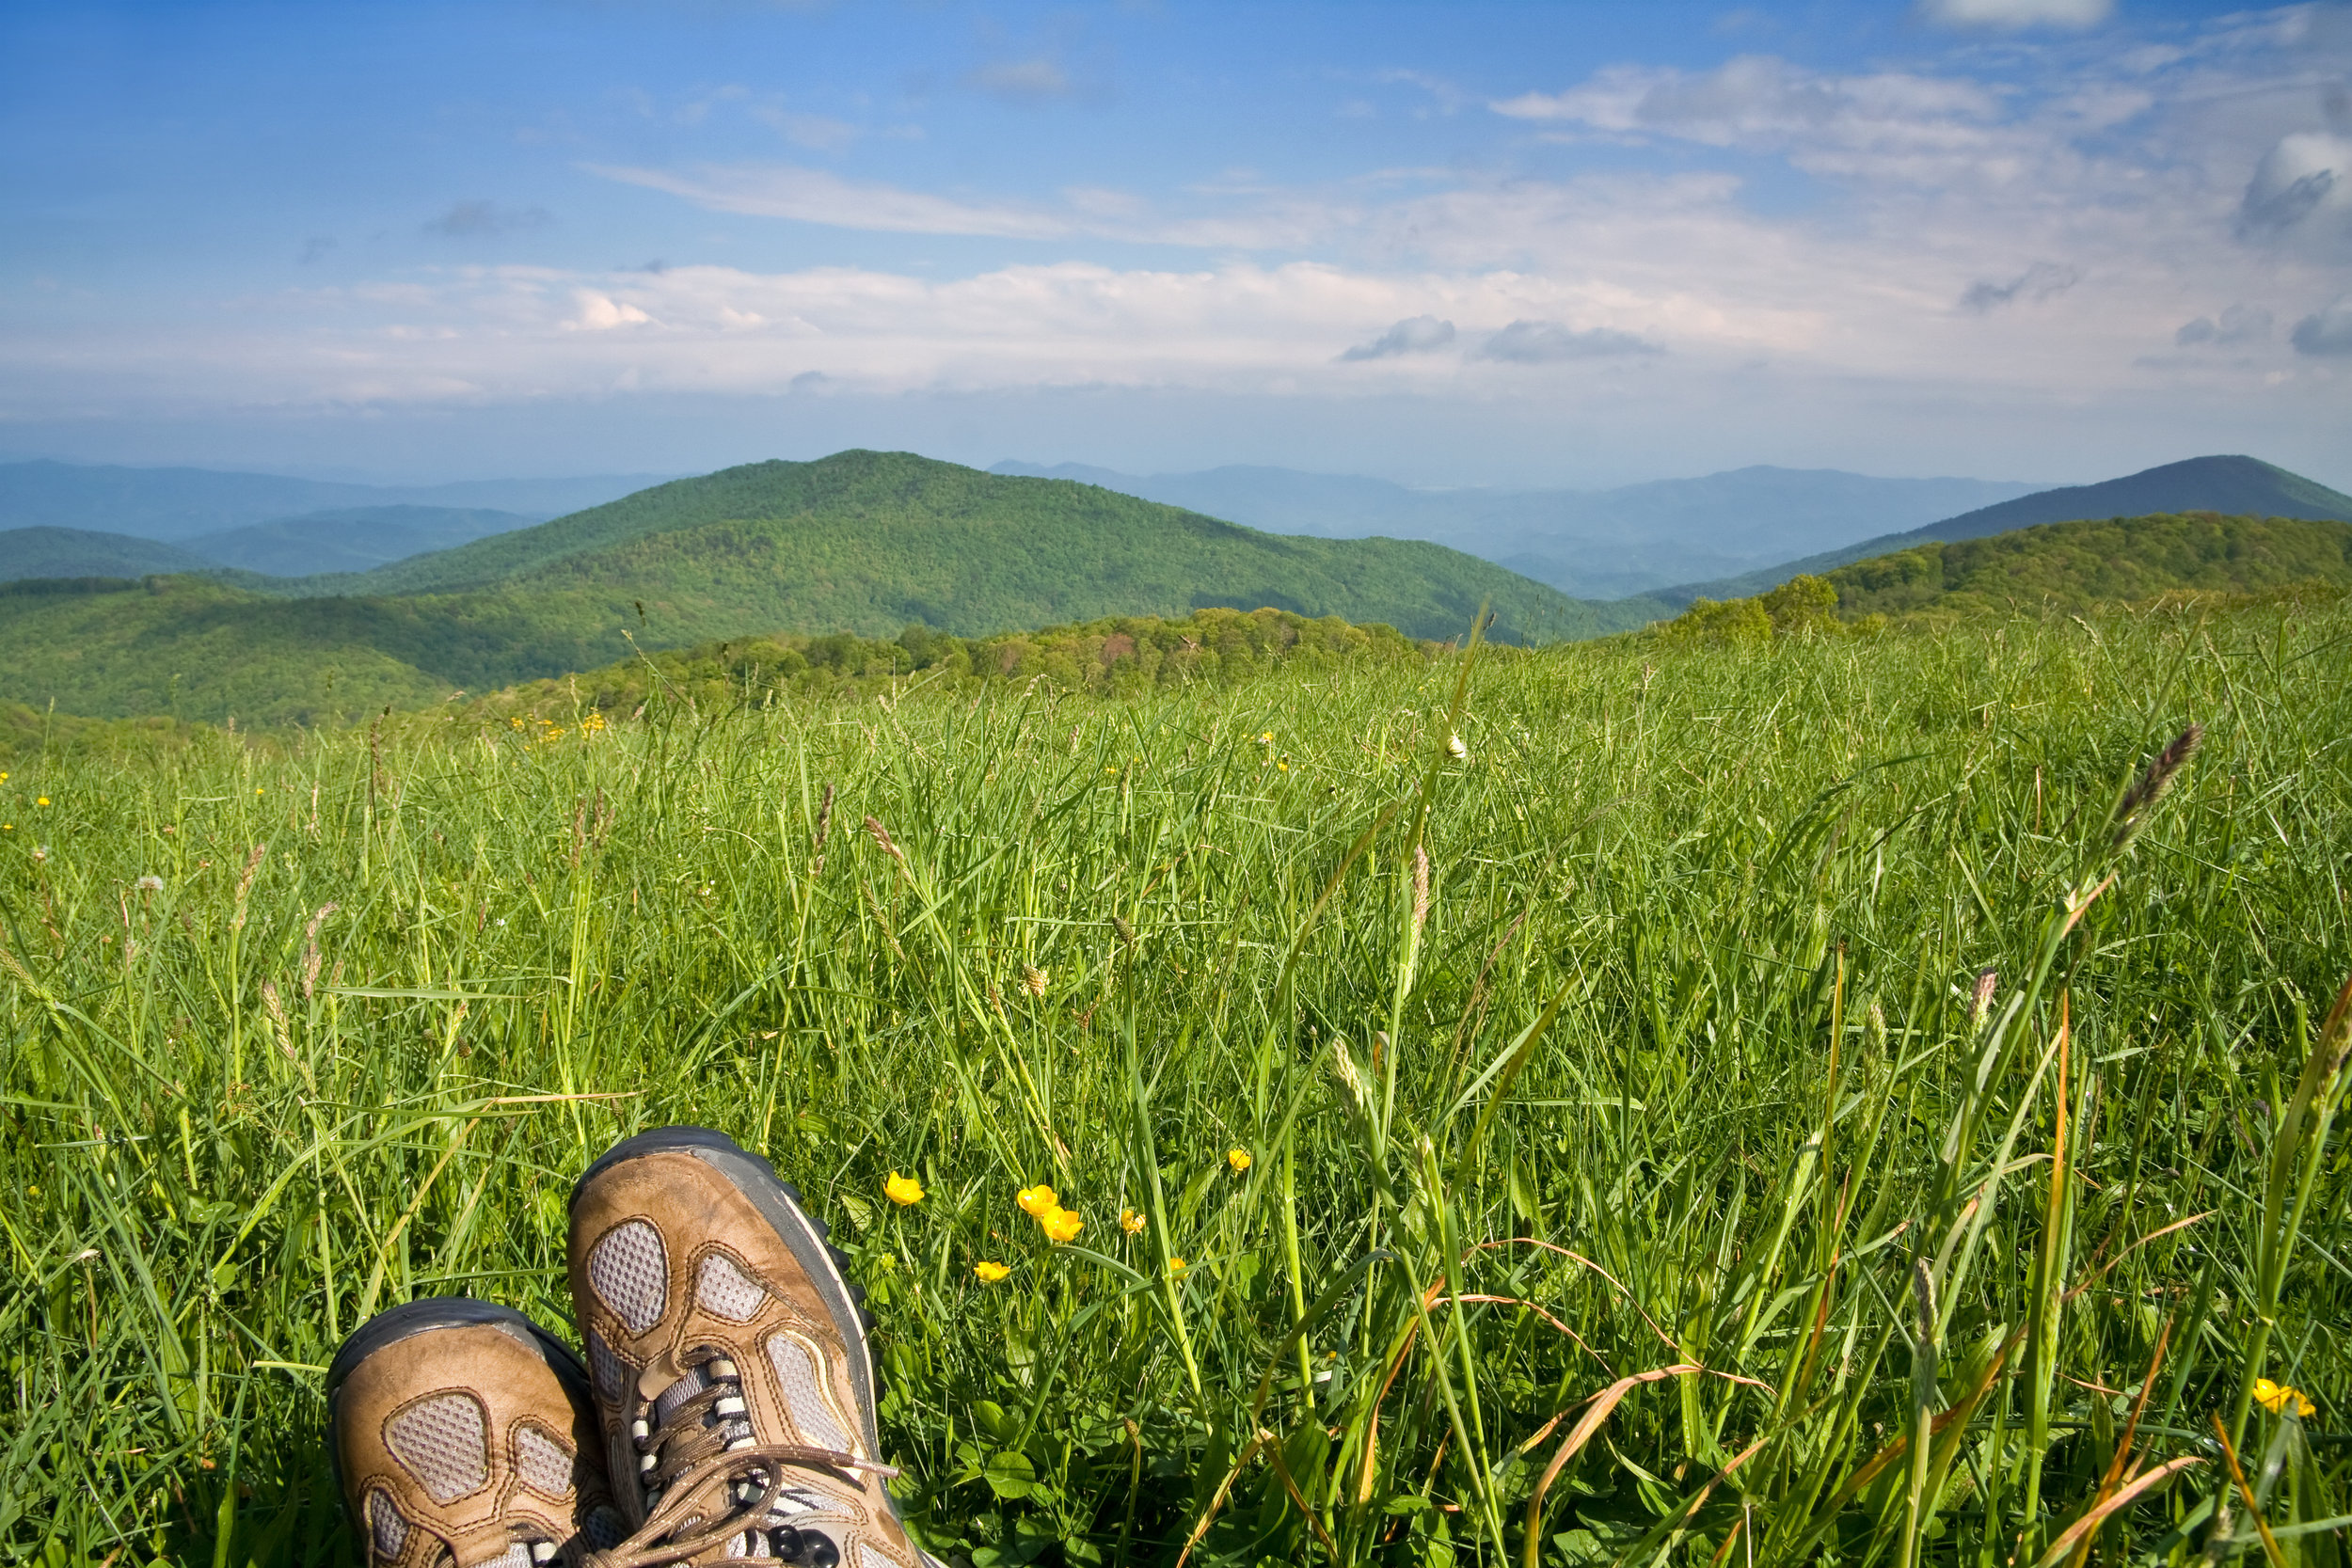 Hiker on Mountain Meadow.jpg